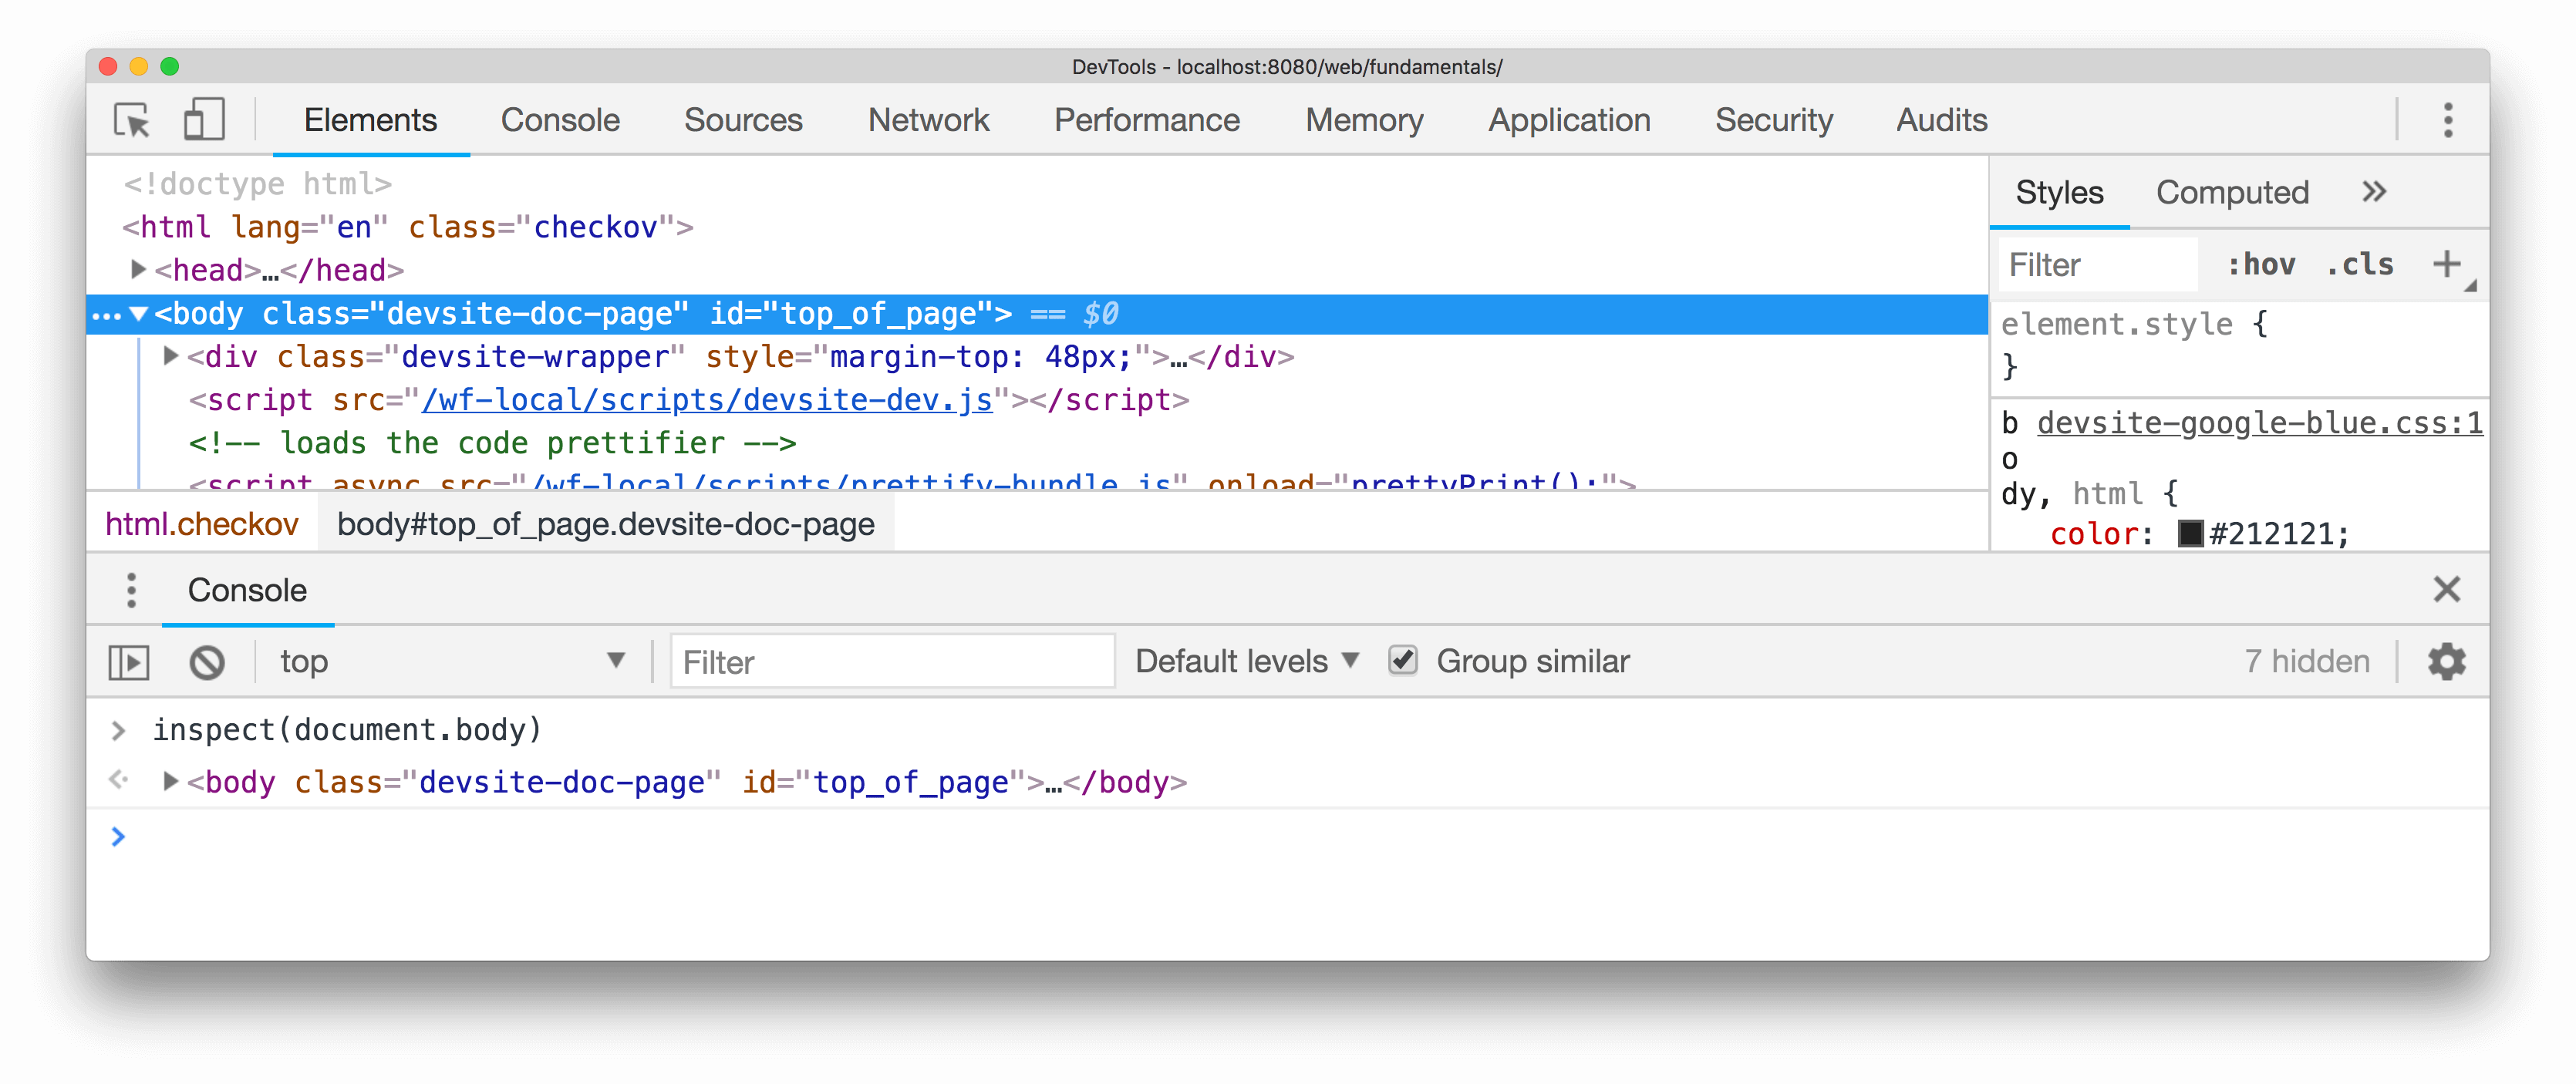 Inspecting an element with inspect()